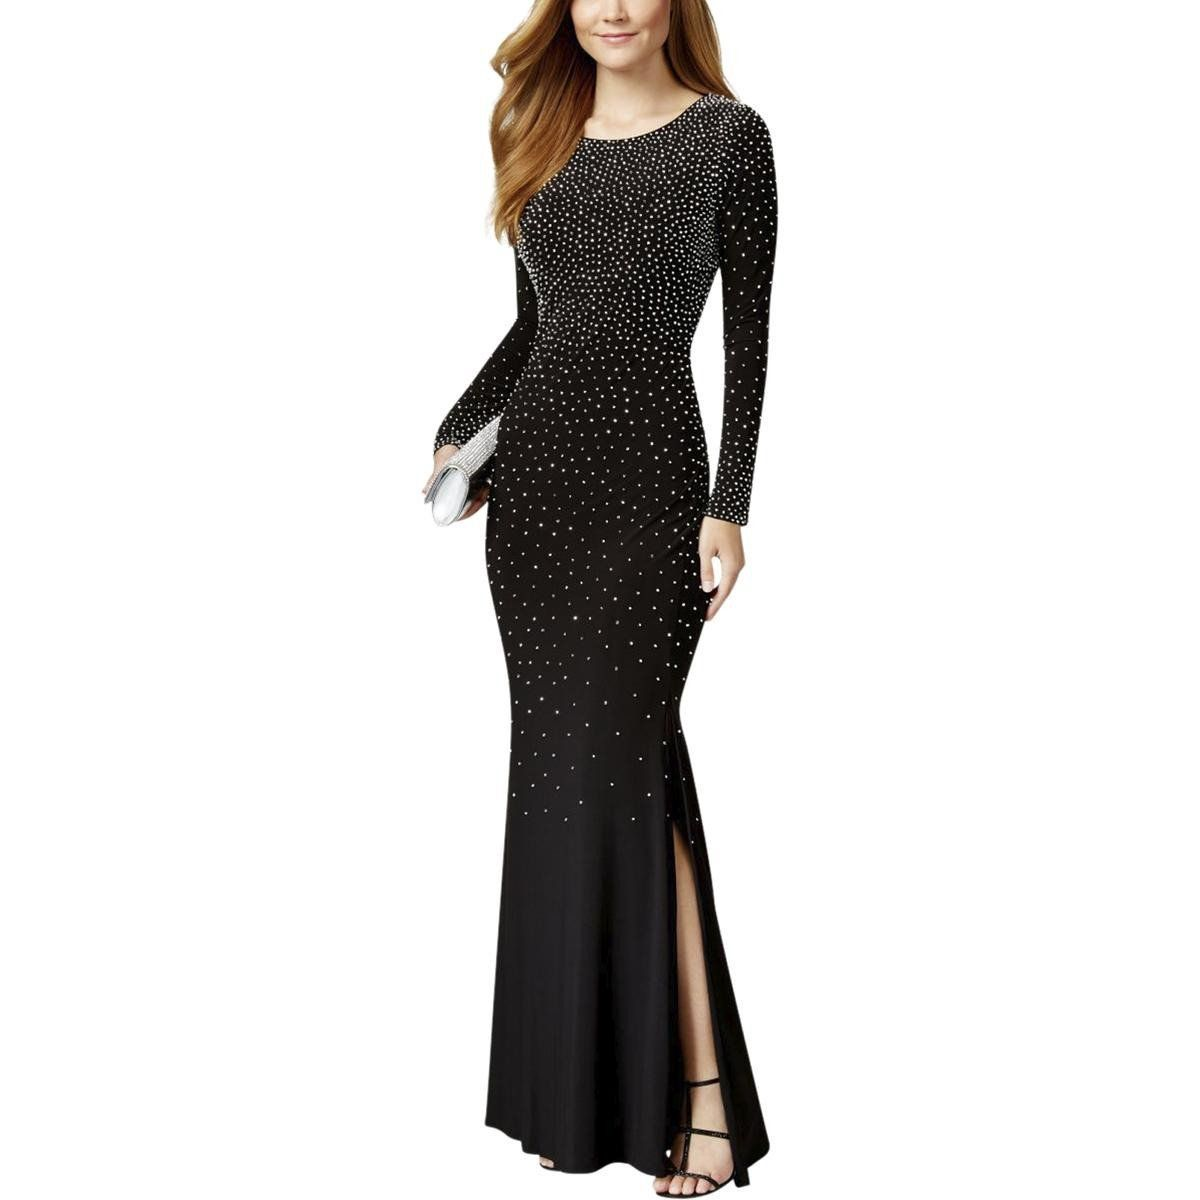 Xscape womens petites rhinestone side slit evening dress products